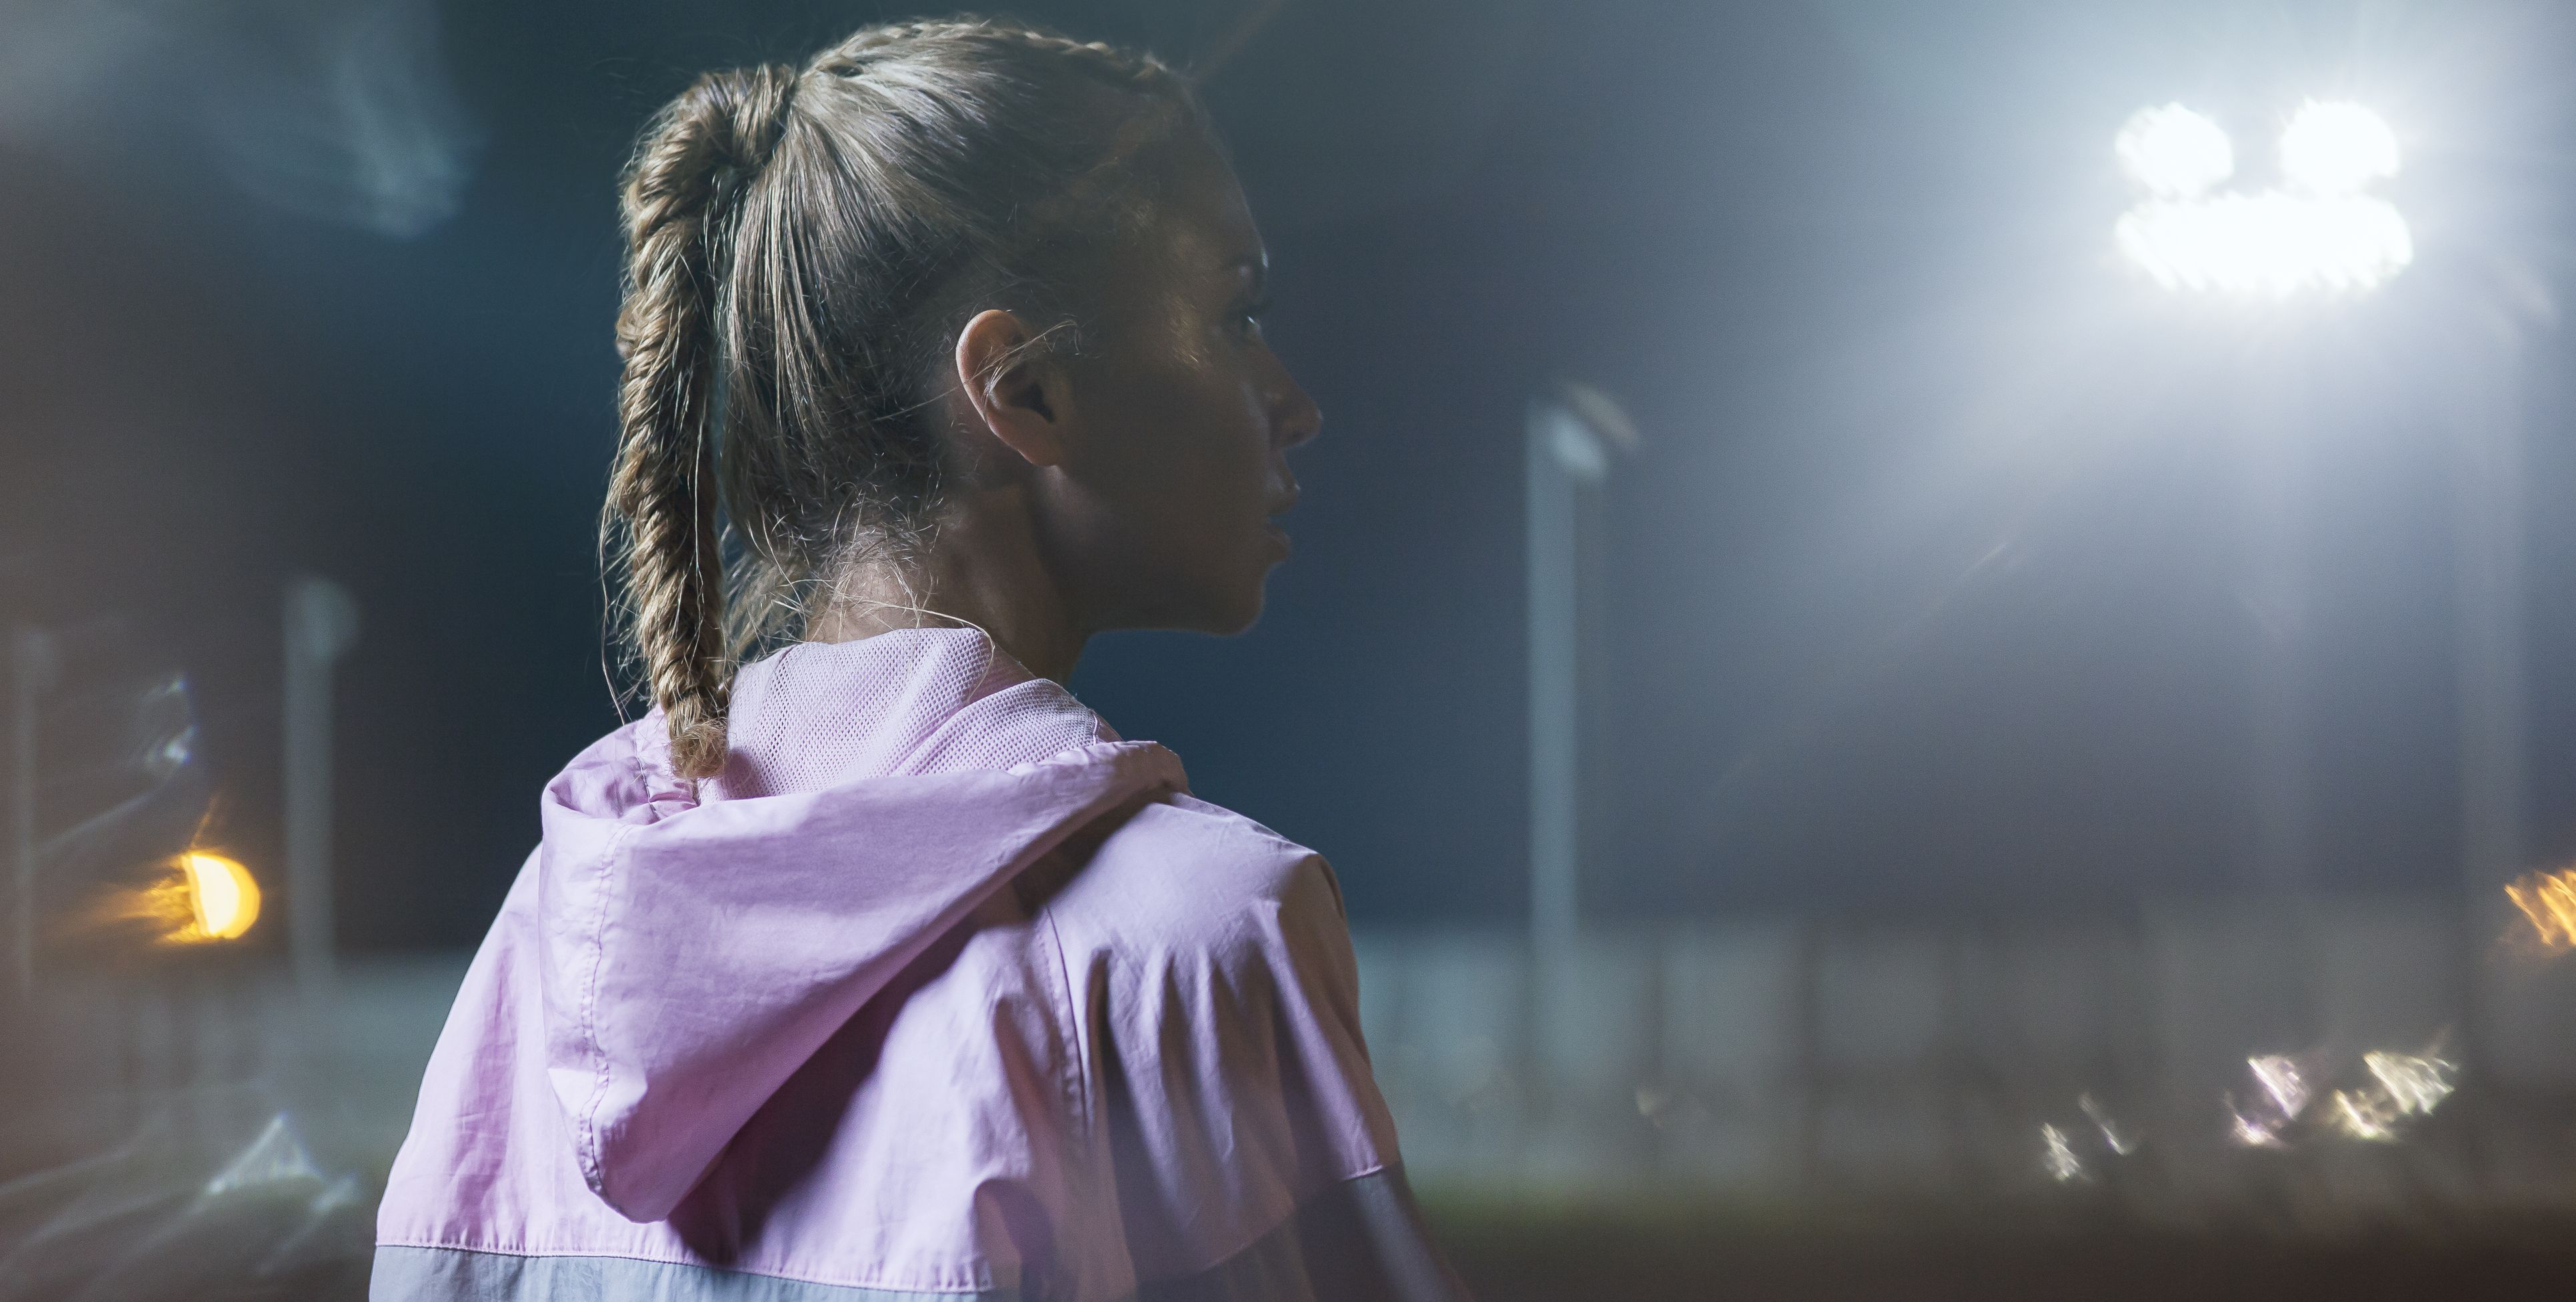 Portrait of a female urban runner at night